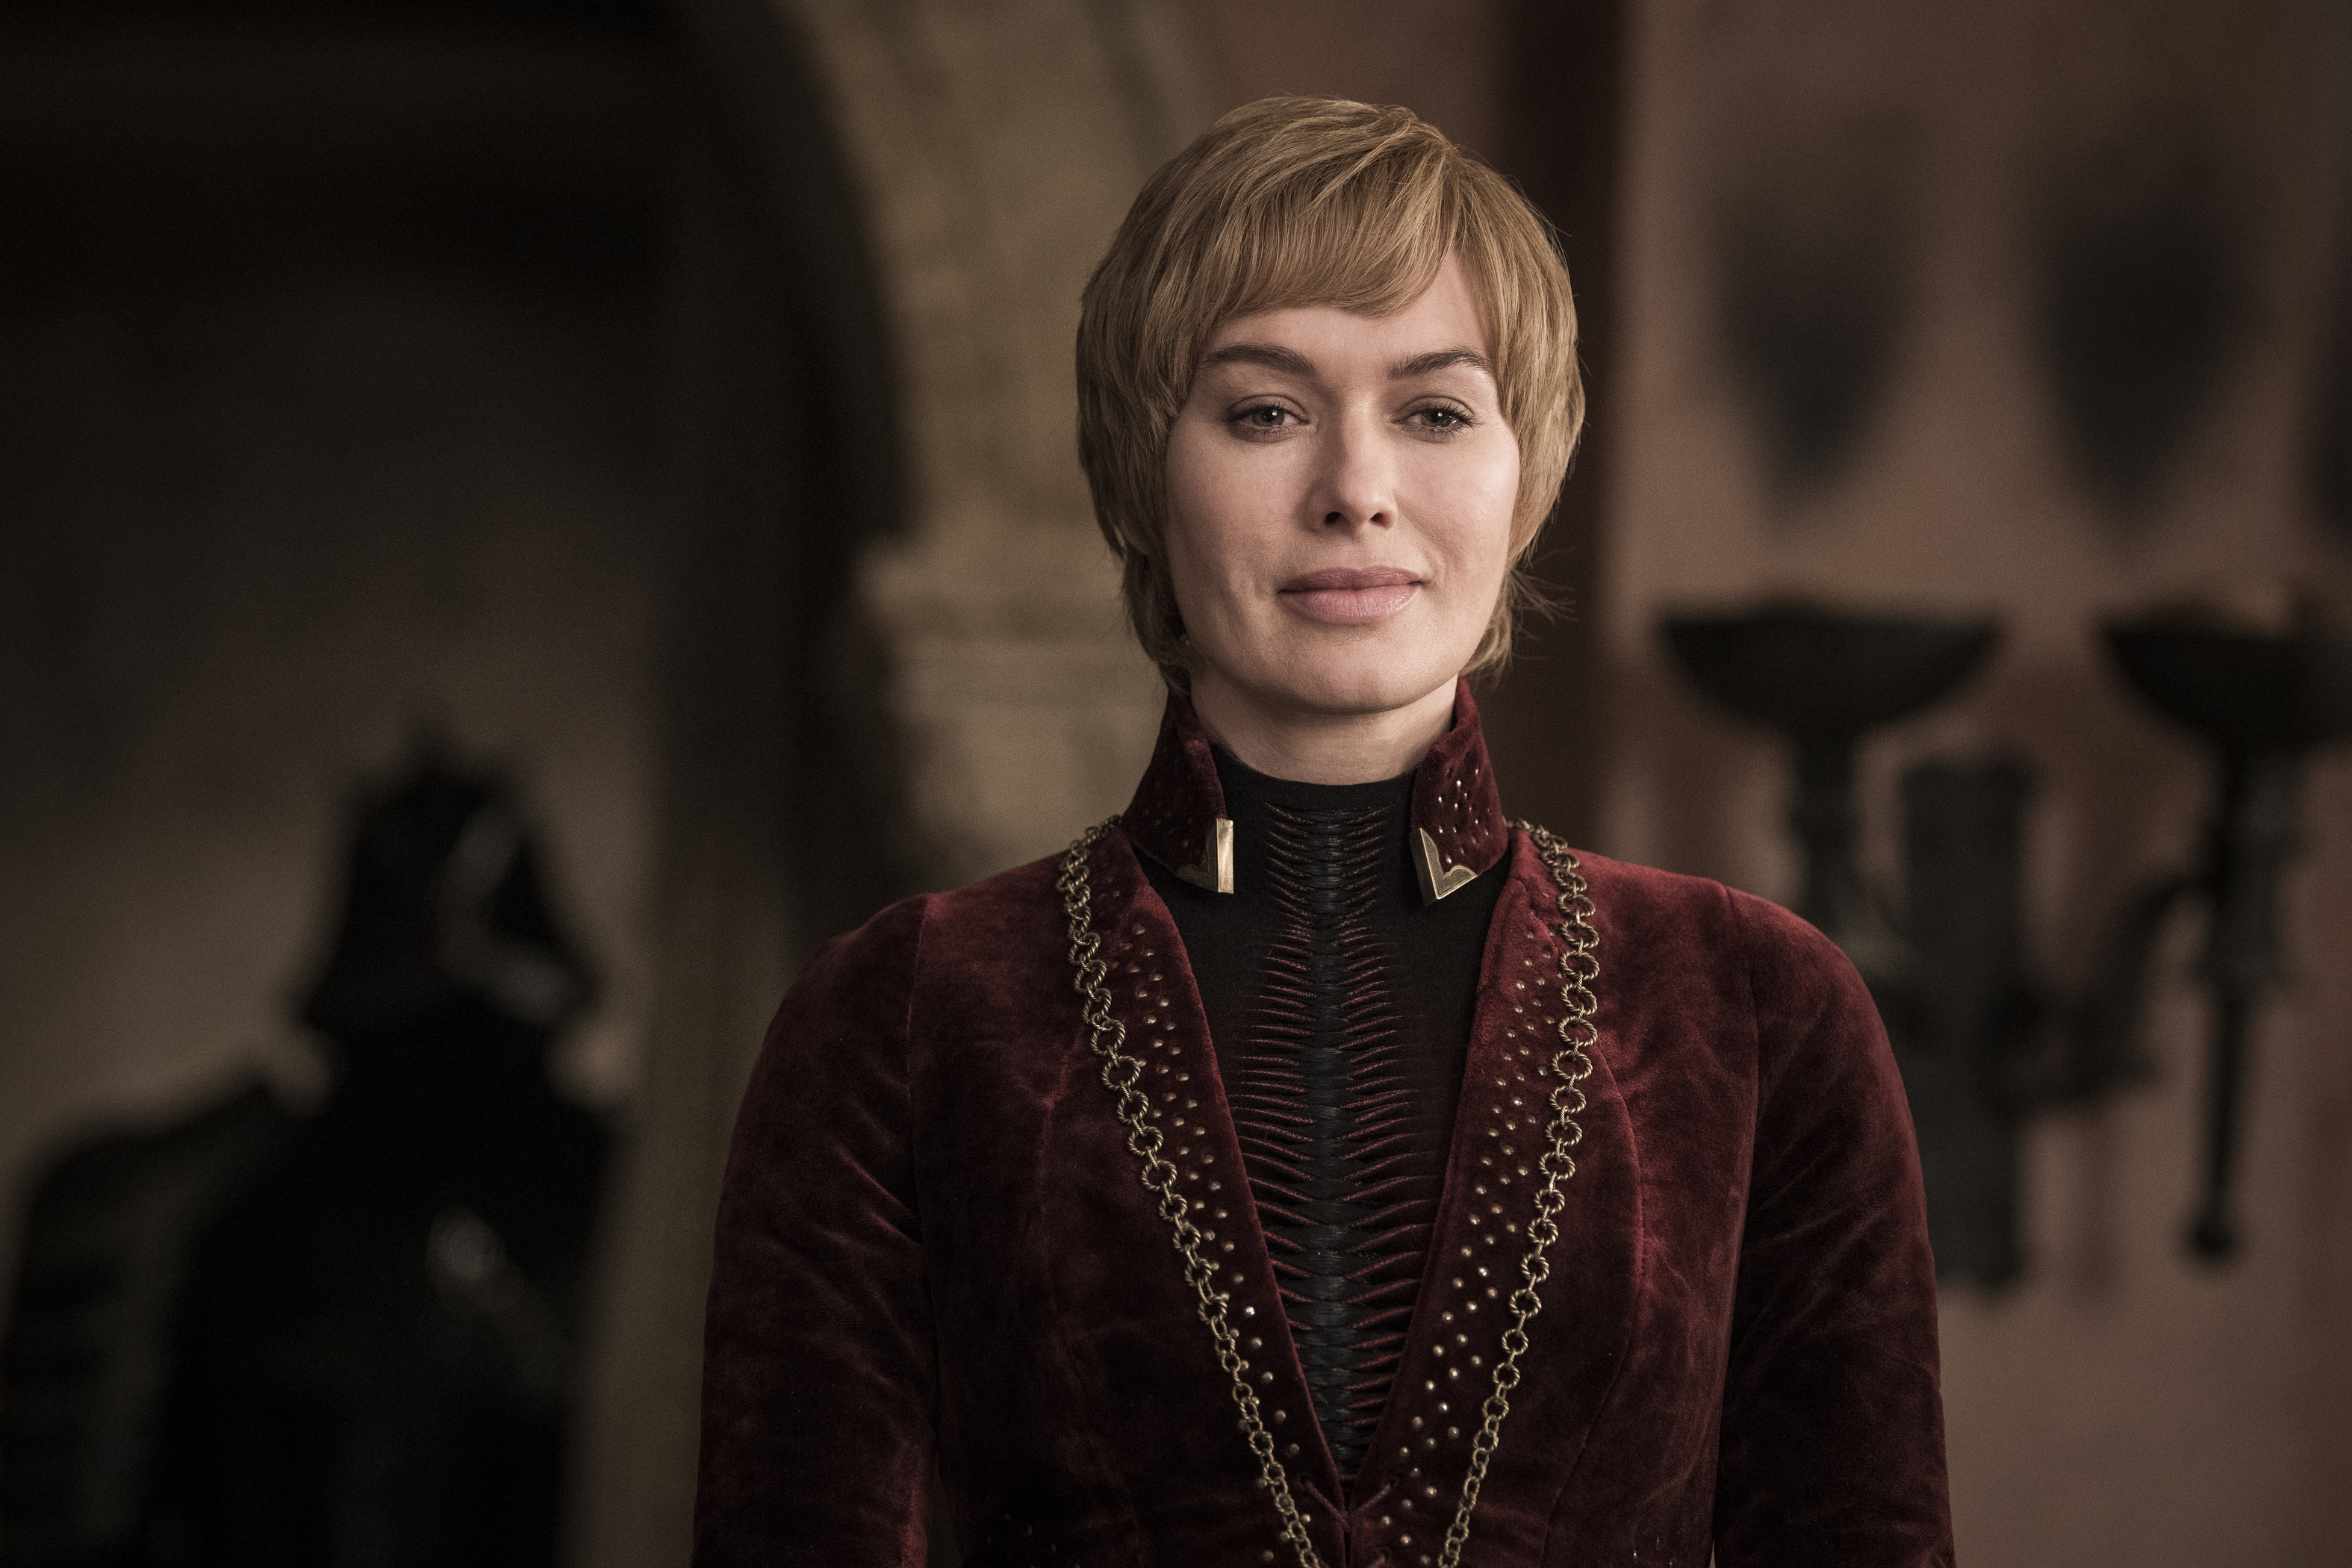 GAME OF THRONES S8 EP 5 PRE AIR IMAGES (5)